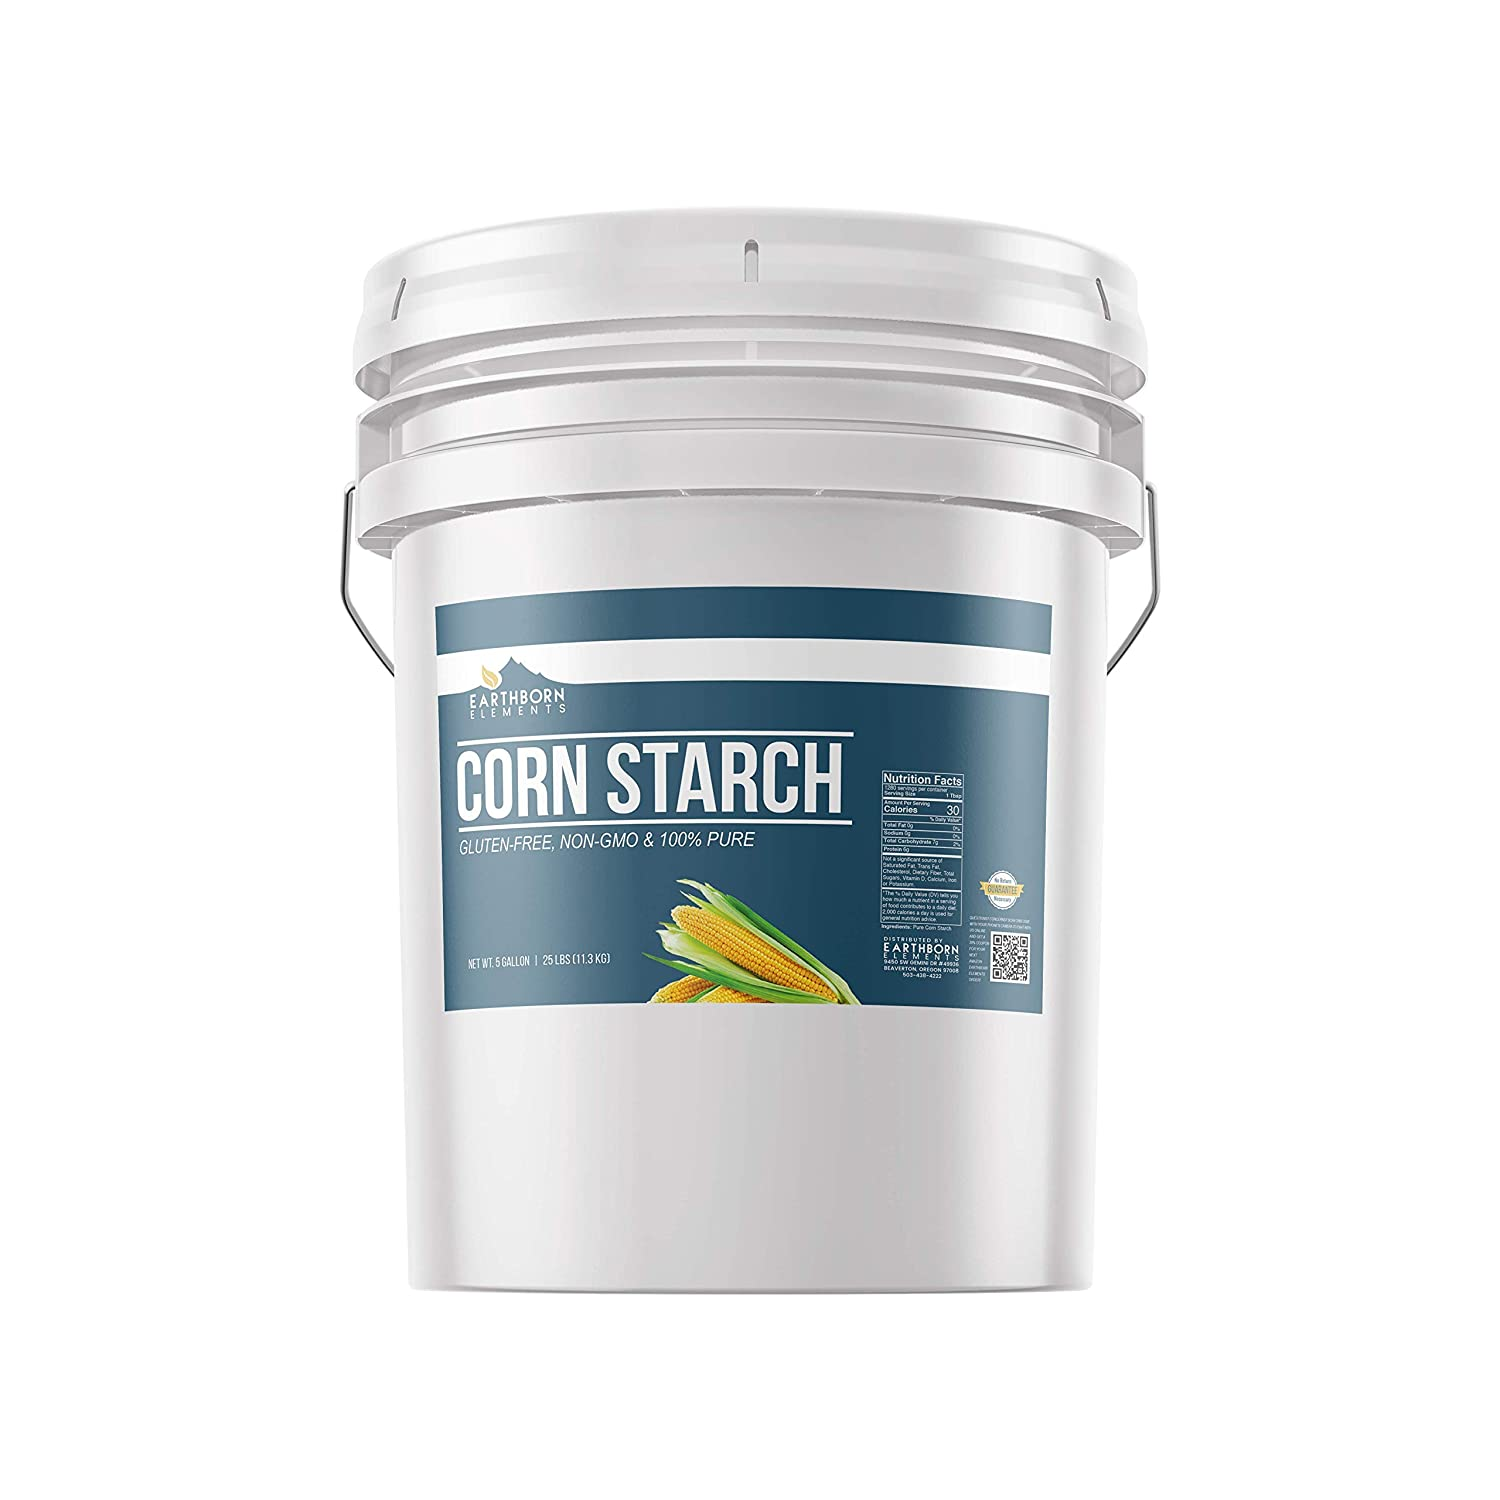 Corn Starch (5 Gallon) Thickener For Sauces, Soups, & Gravies, Highest Quality, All-Natural, Food Safe & USP Grade, Vegan, Gluten-Free, Resealable Bucket by Earthborn Elements